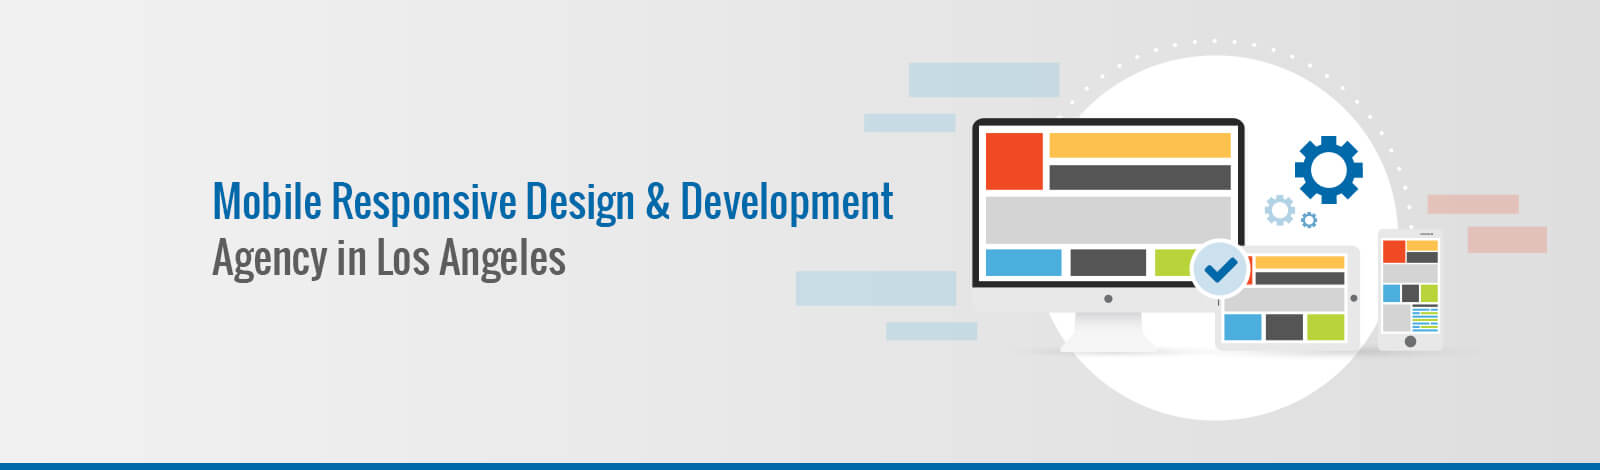 Mobile responsive design development agency in los angeles mobile responsive design new malvernweather Choice Image